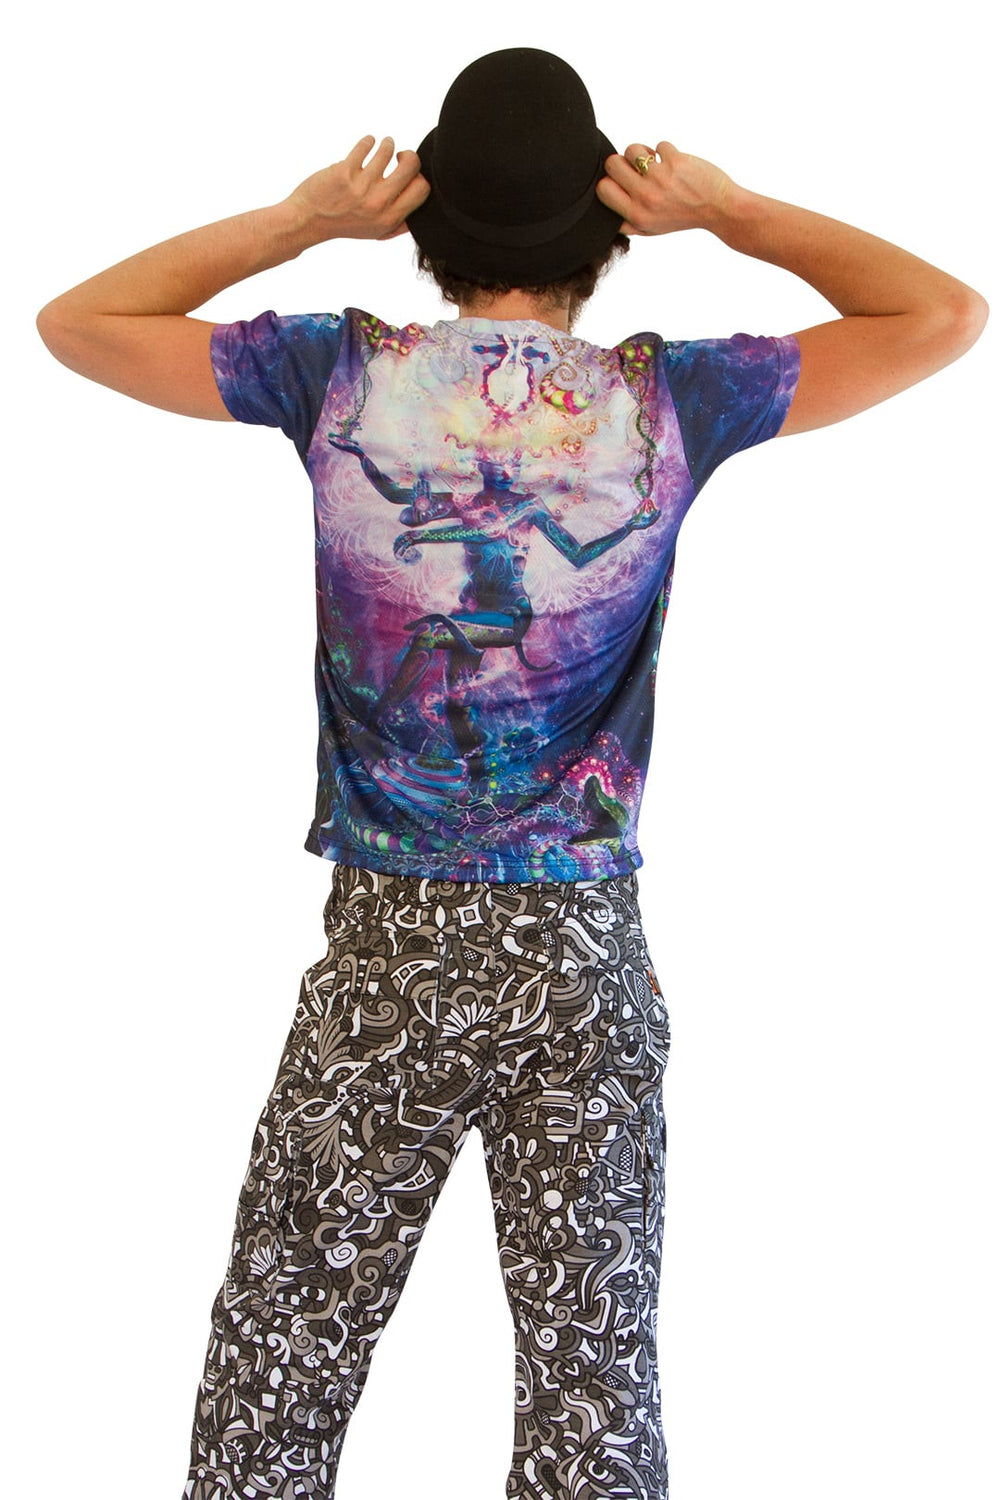 Sublime T-shirt : Serpentine Apotheosis